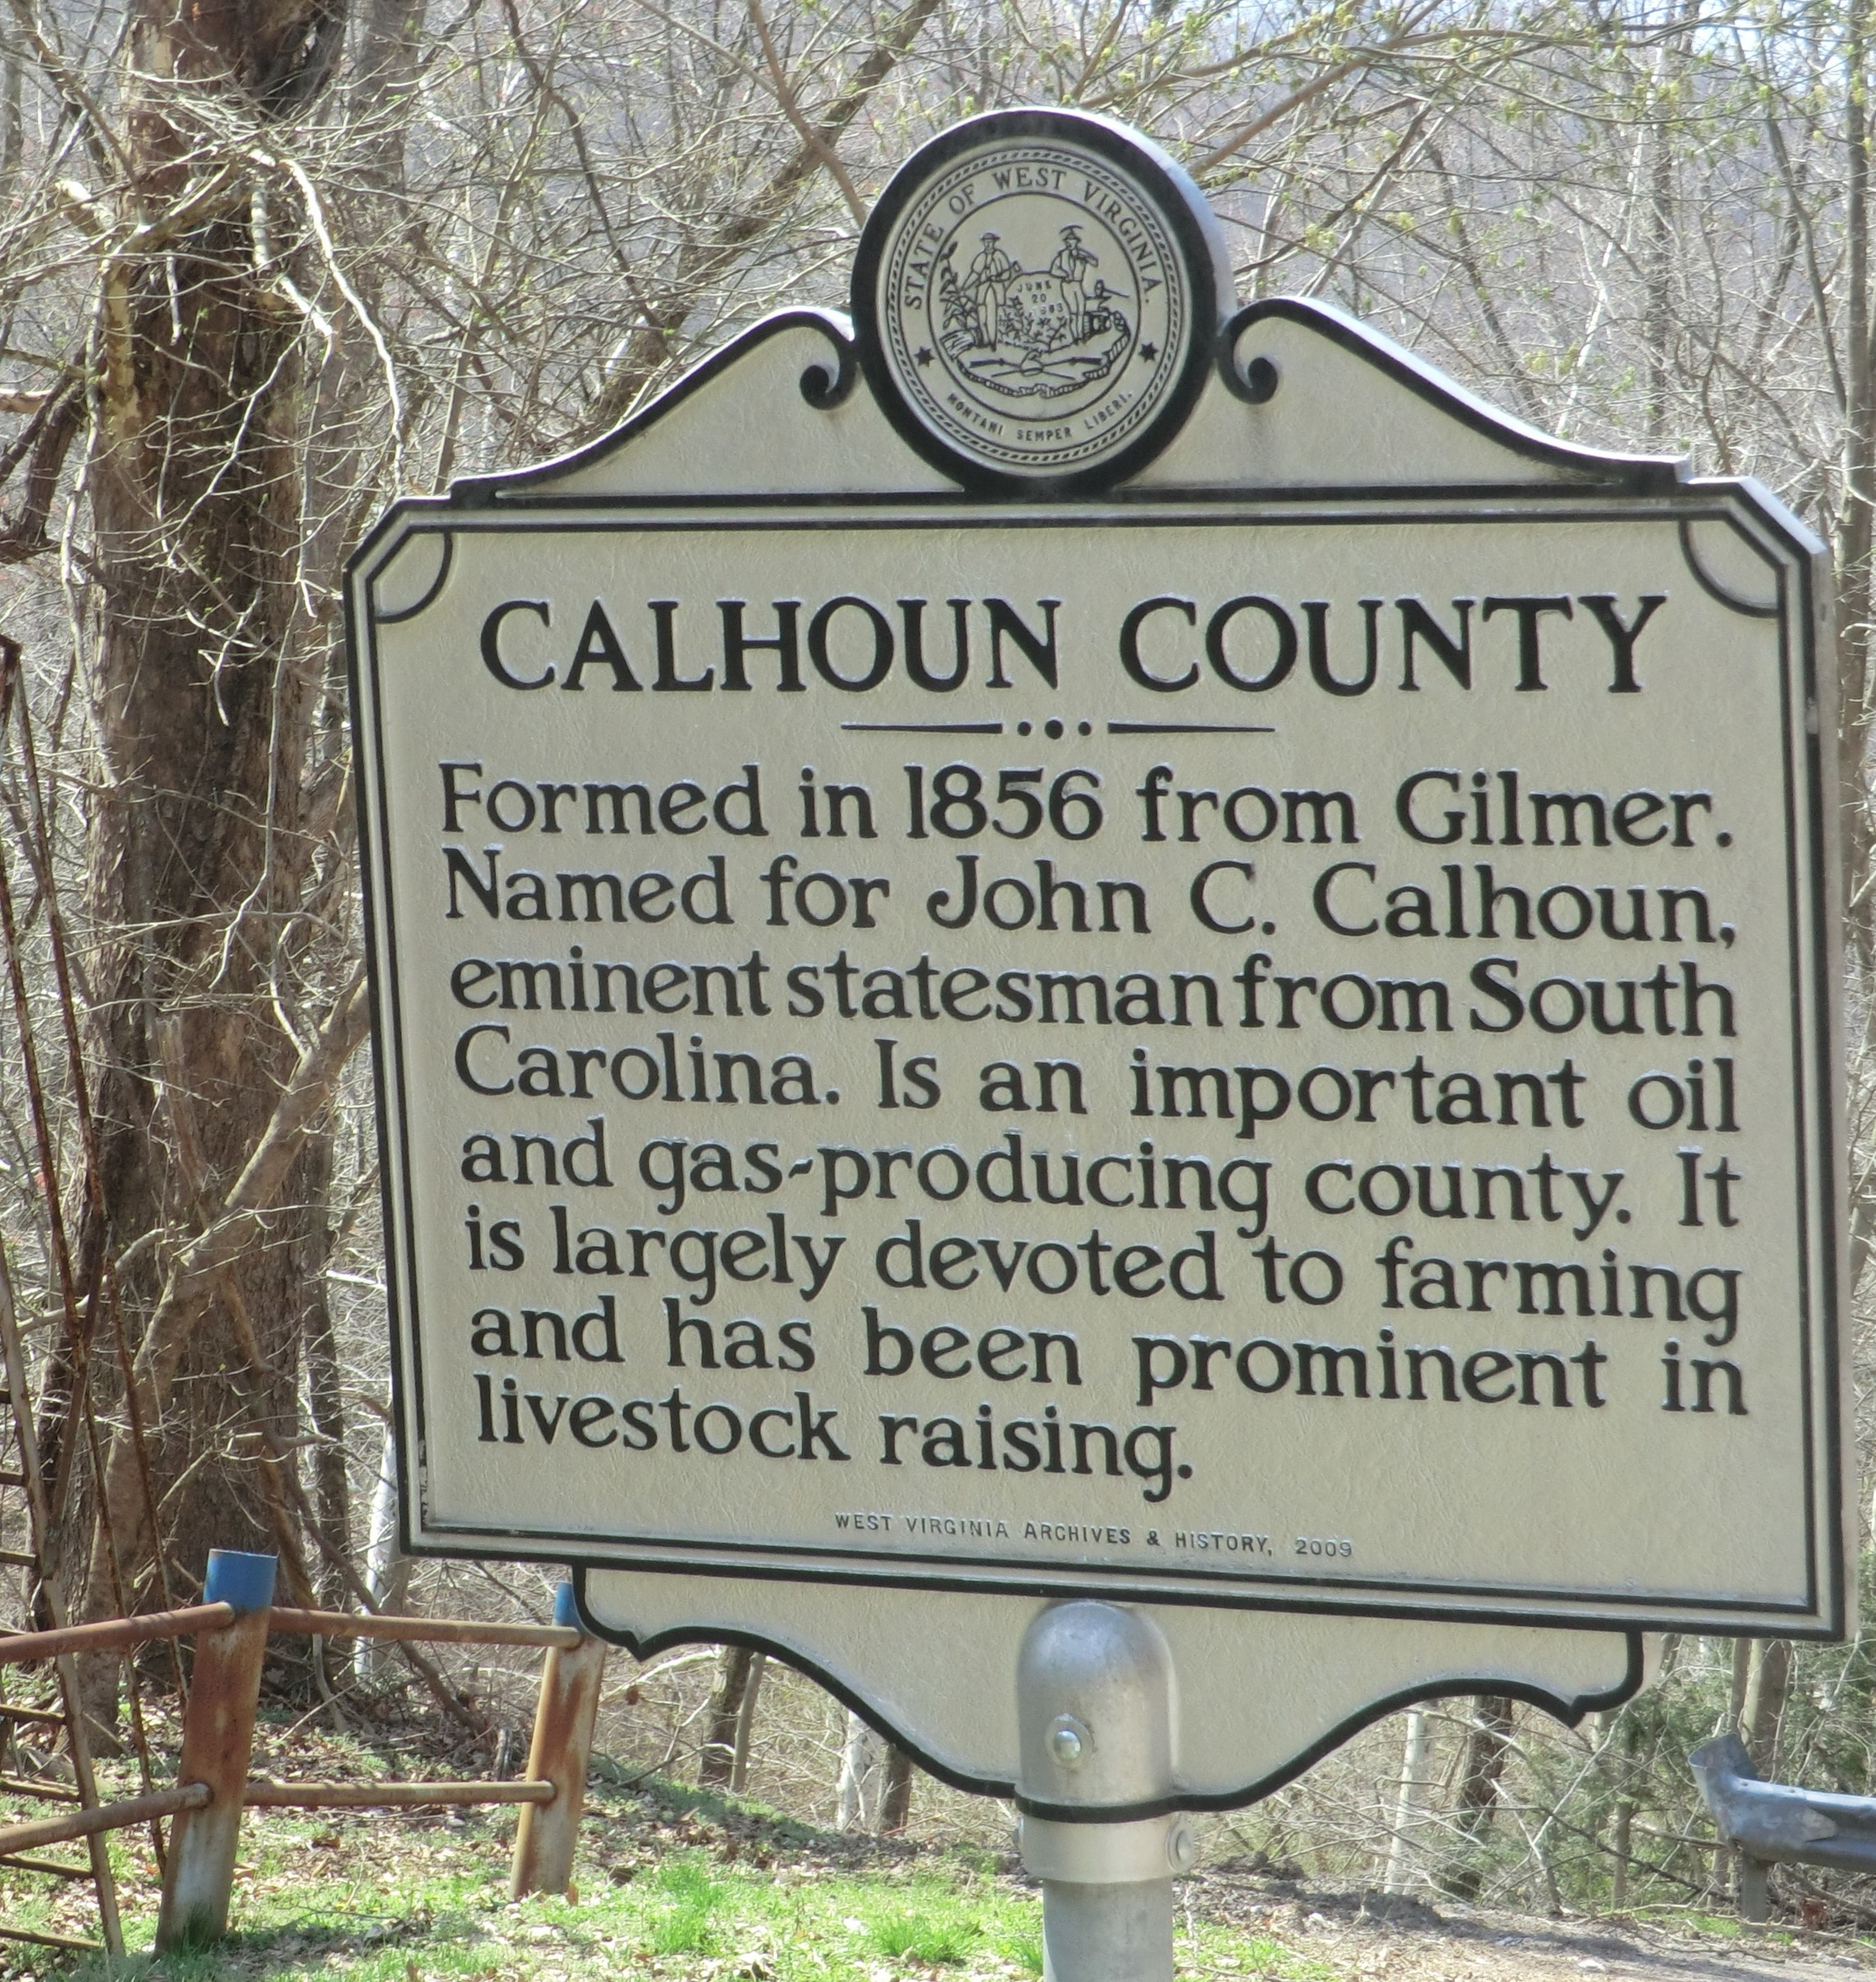 Calhoun County side of the marker